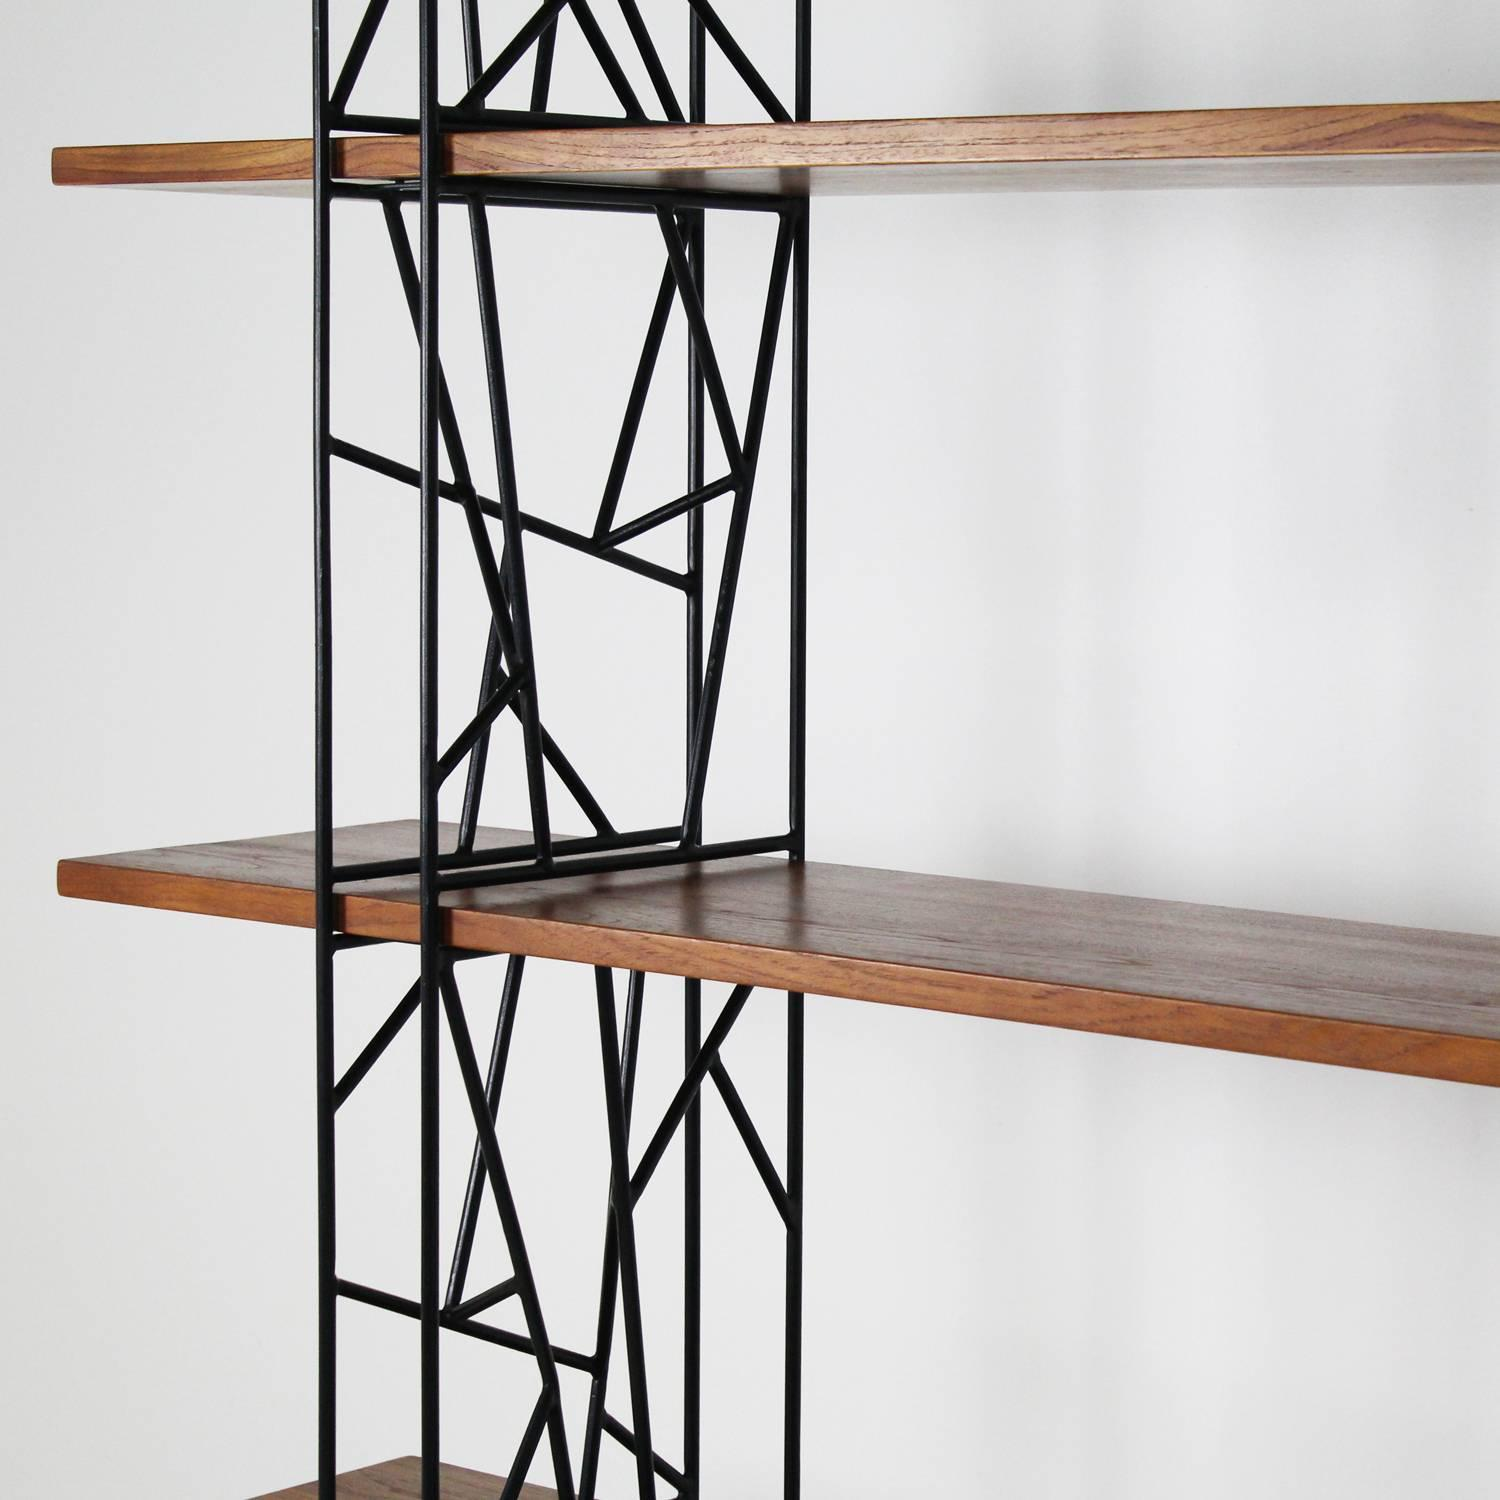 Superb img of Bookshelf with Black Metal Frame and Wood Shelves 1980 at 1stdibs with #7C4D35 color and 1500x1500 pixels